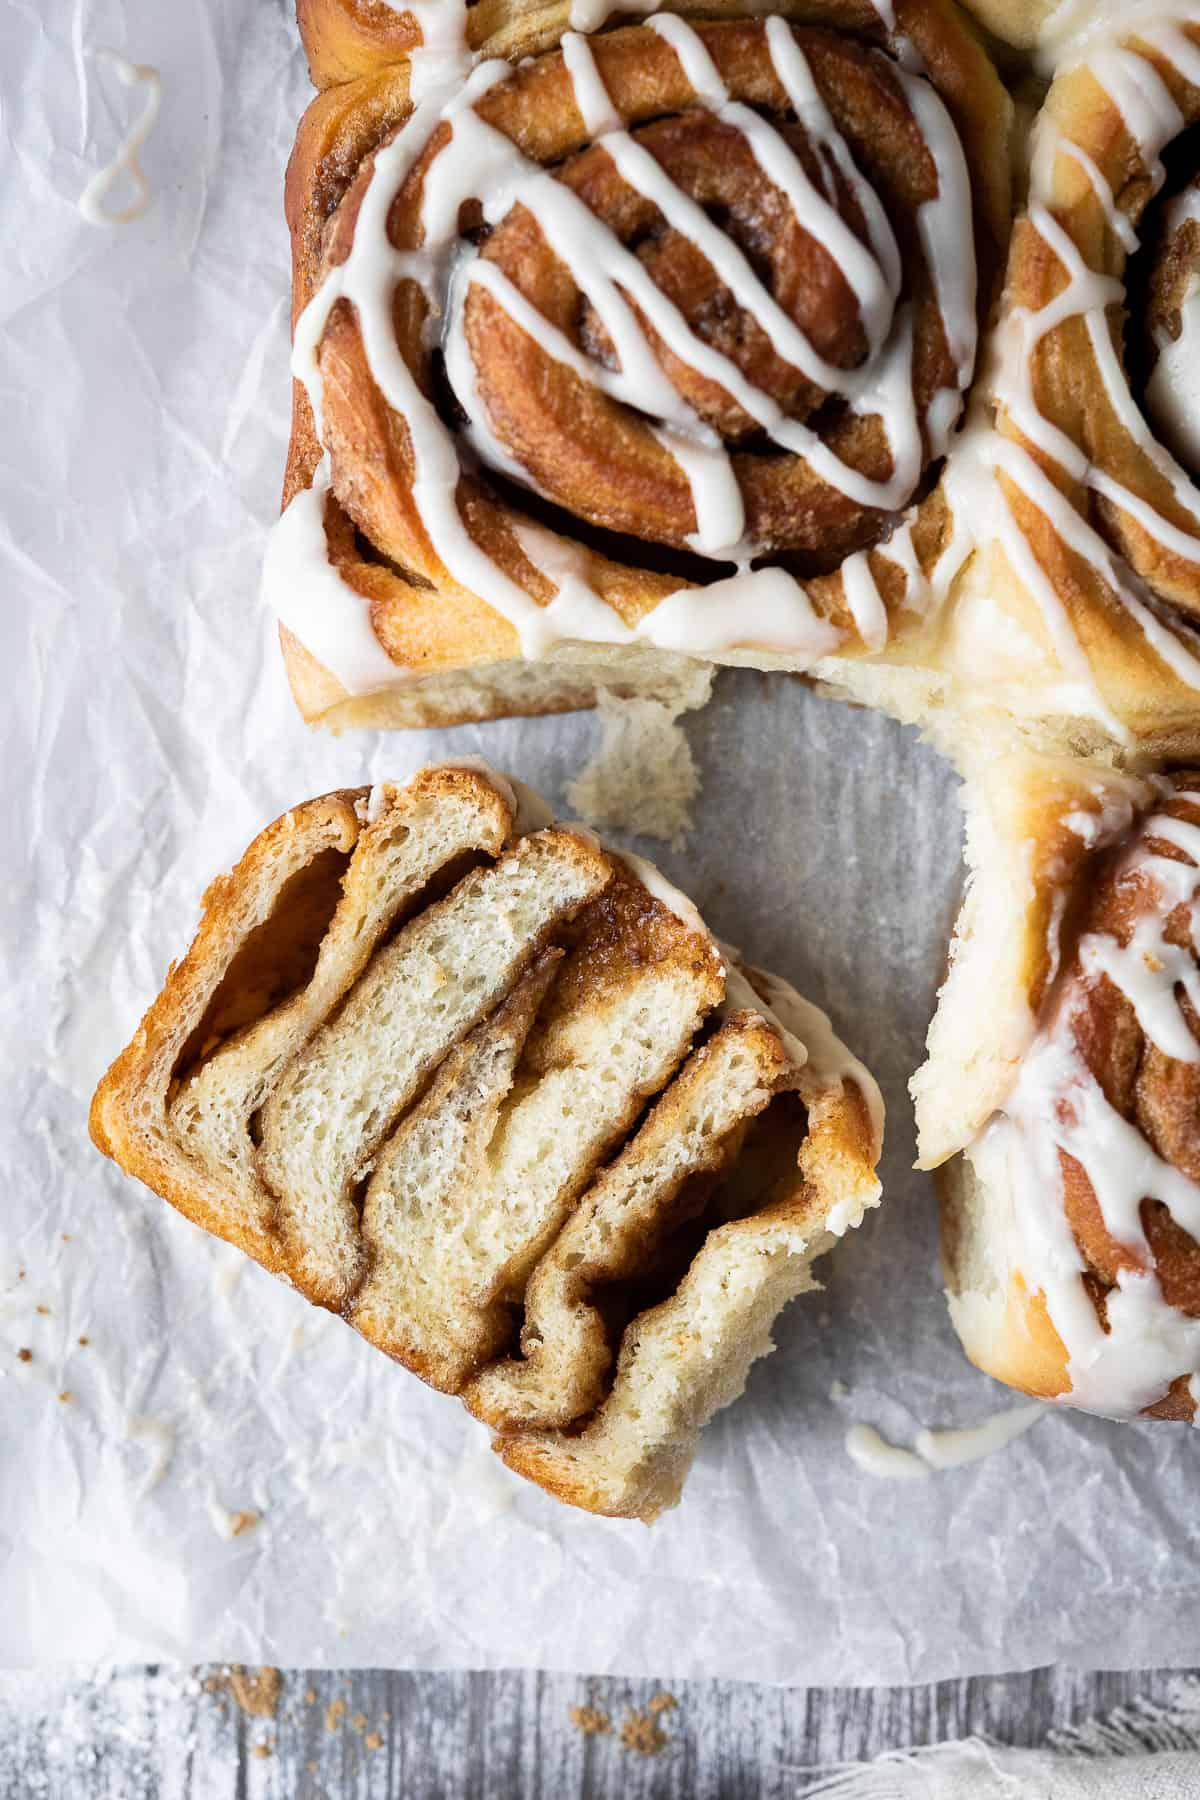 A cinnamon roll sliced in half on white baking parchment.